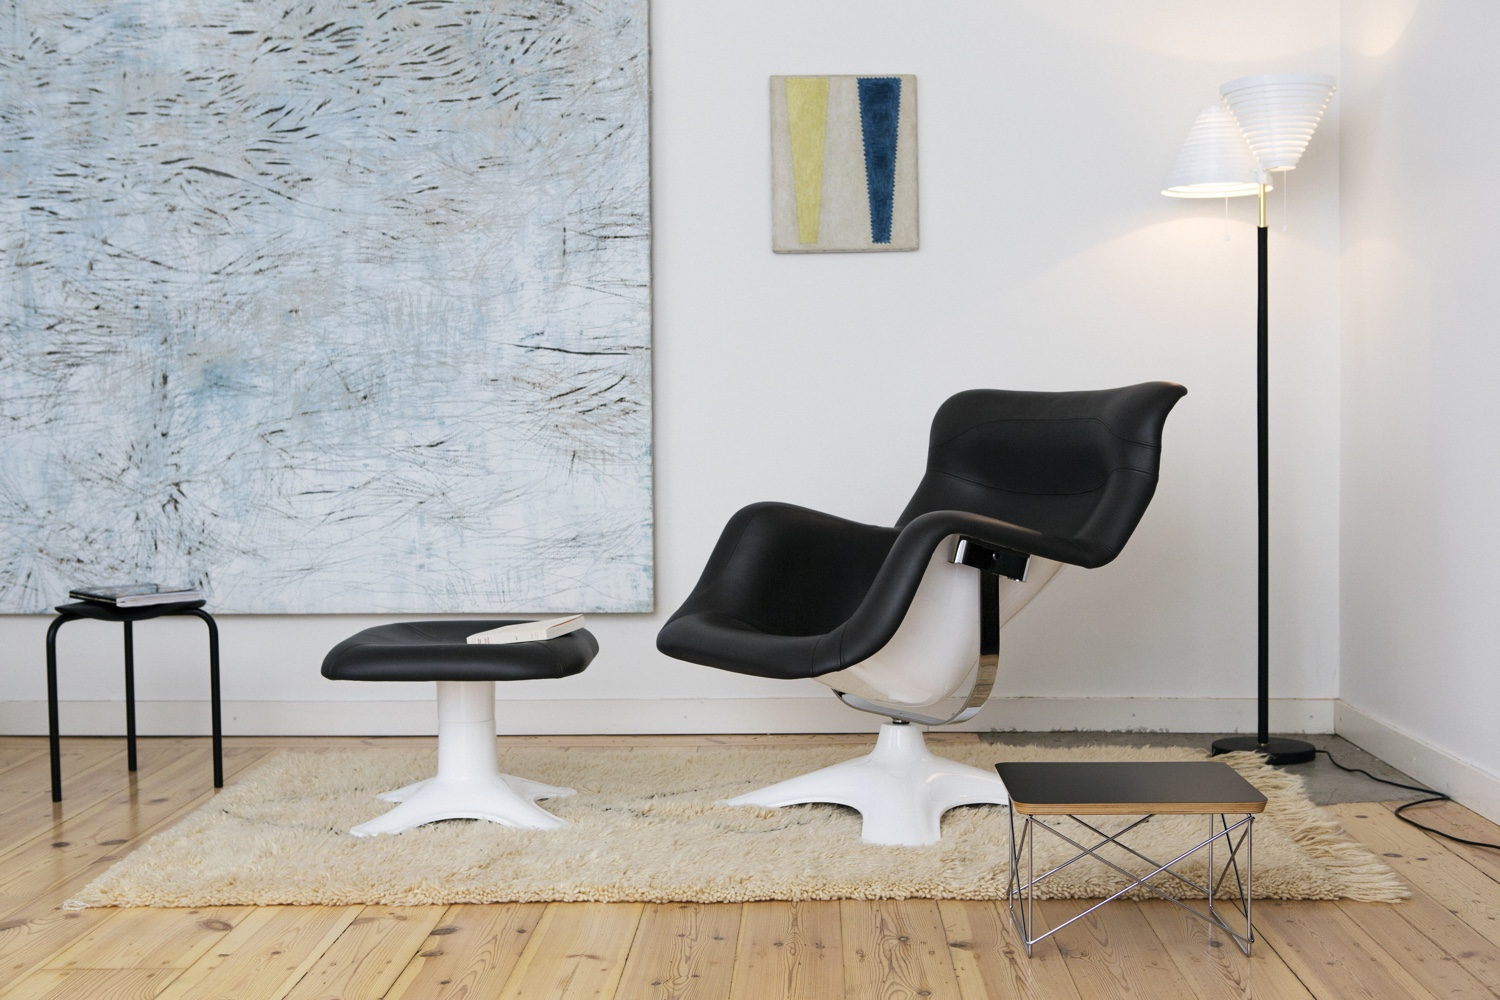 Karuselli Lounge Chair and Karuselli Ottoman. Image by Mikko Ryhänen courtesy of Artek.